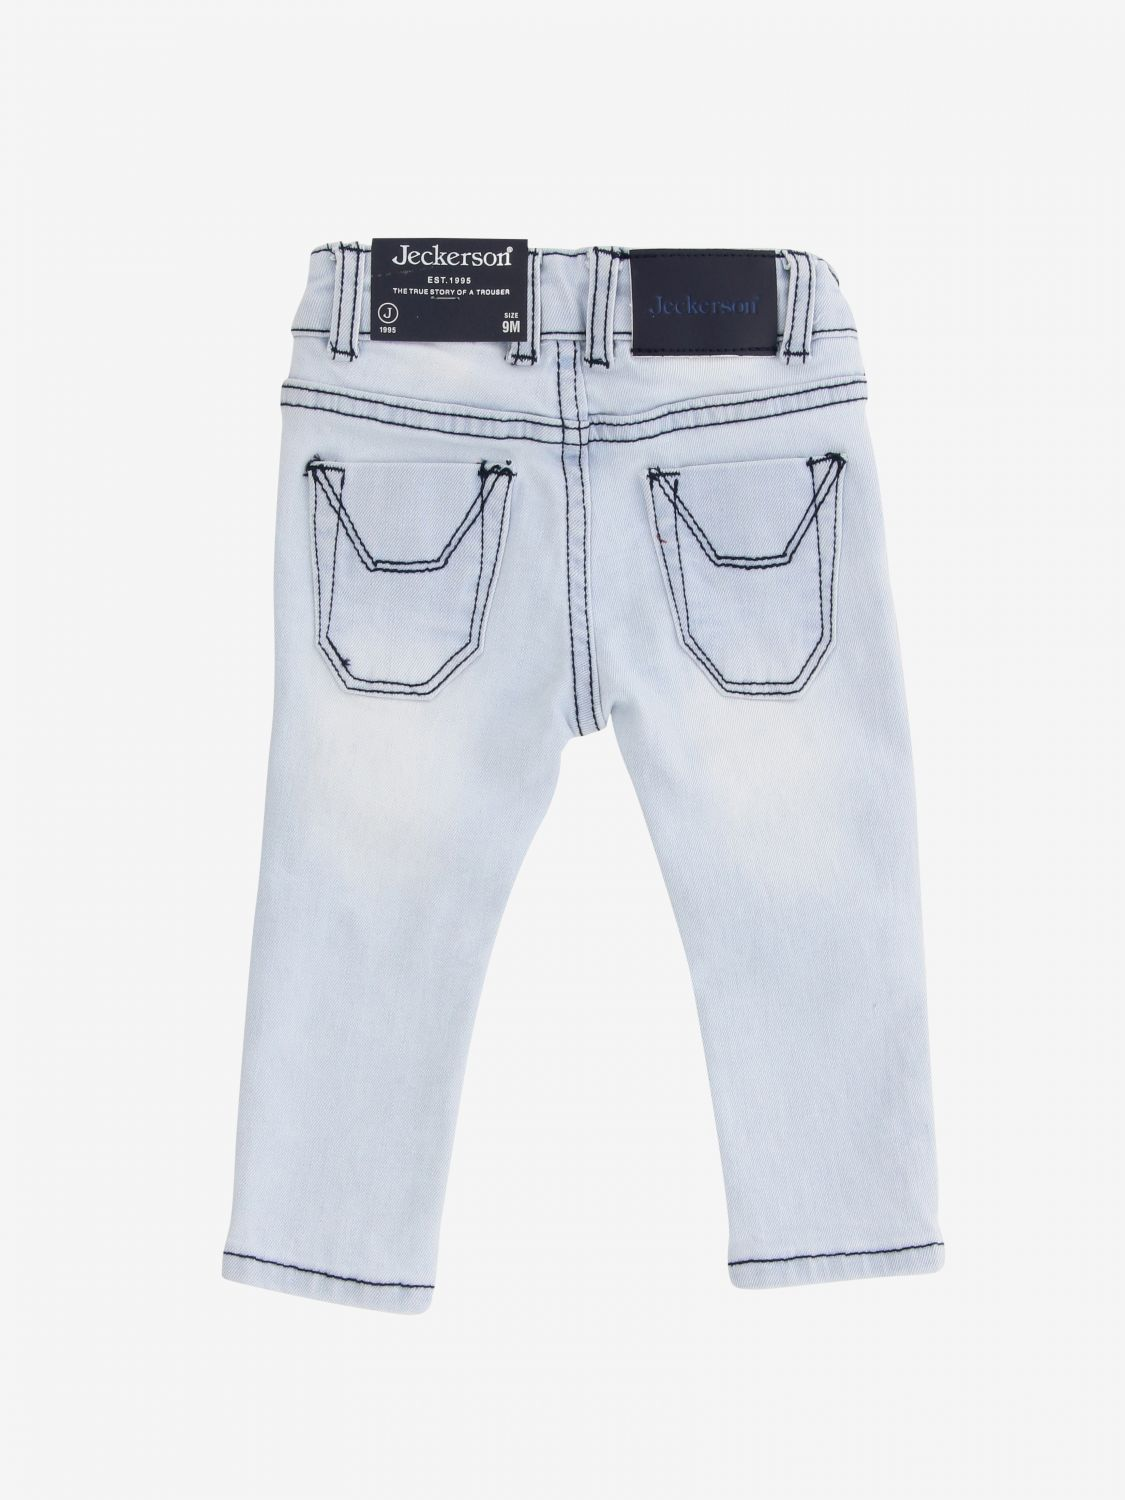 Jeans kinder Jeckerson stone washed 2